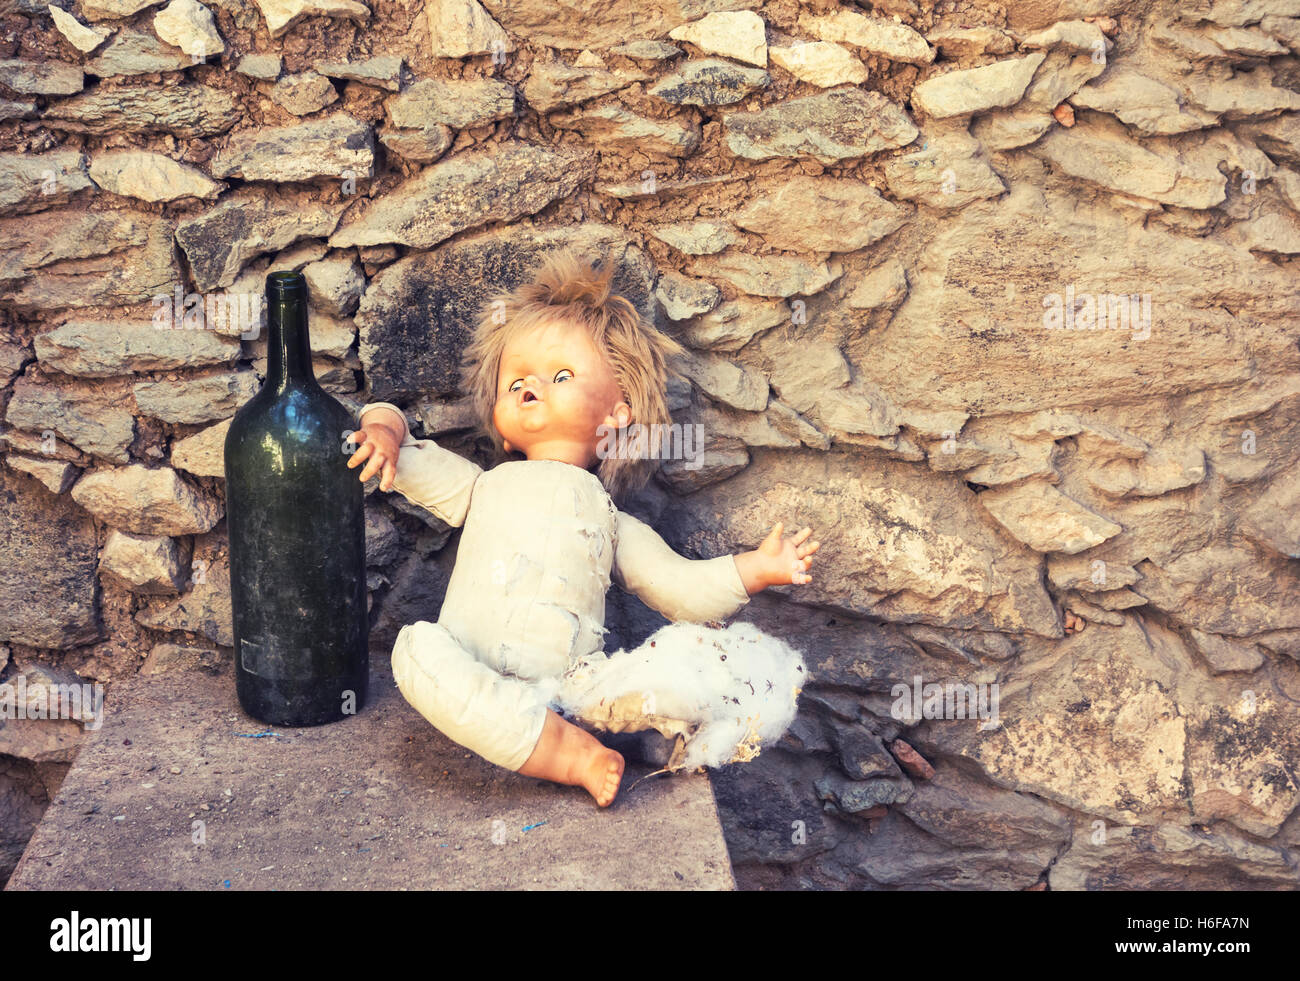 Old doll propped up against empty wine bottle in abandoned mountain house. - Stock Image